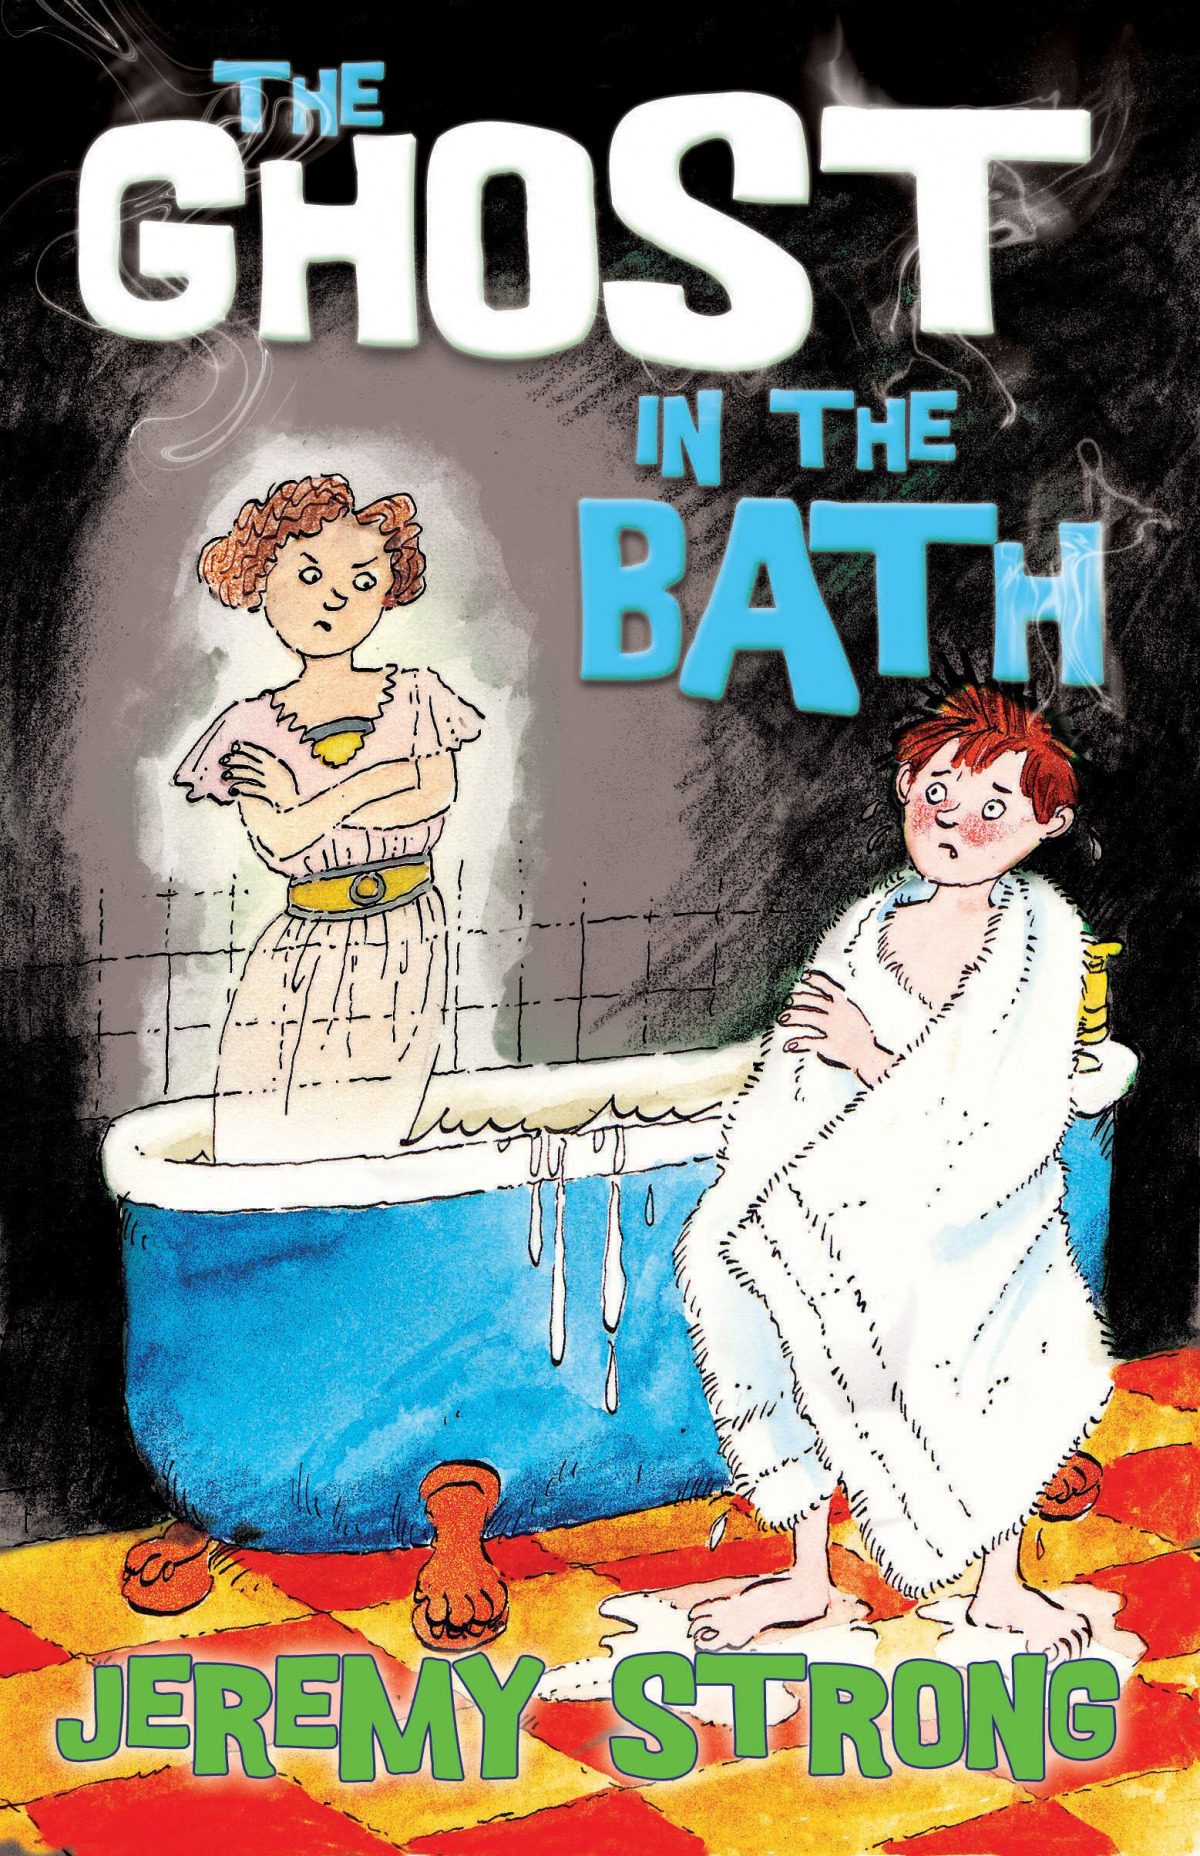 The ghost in the bath